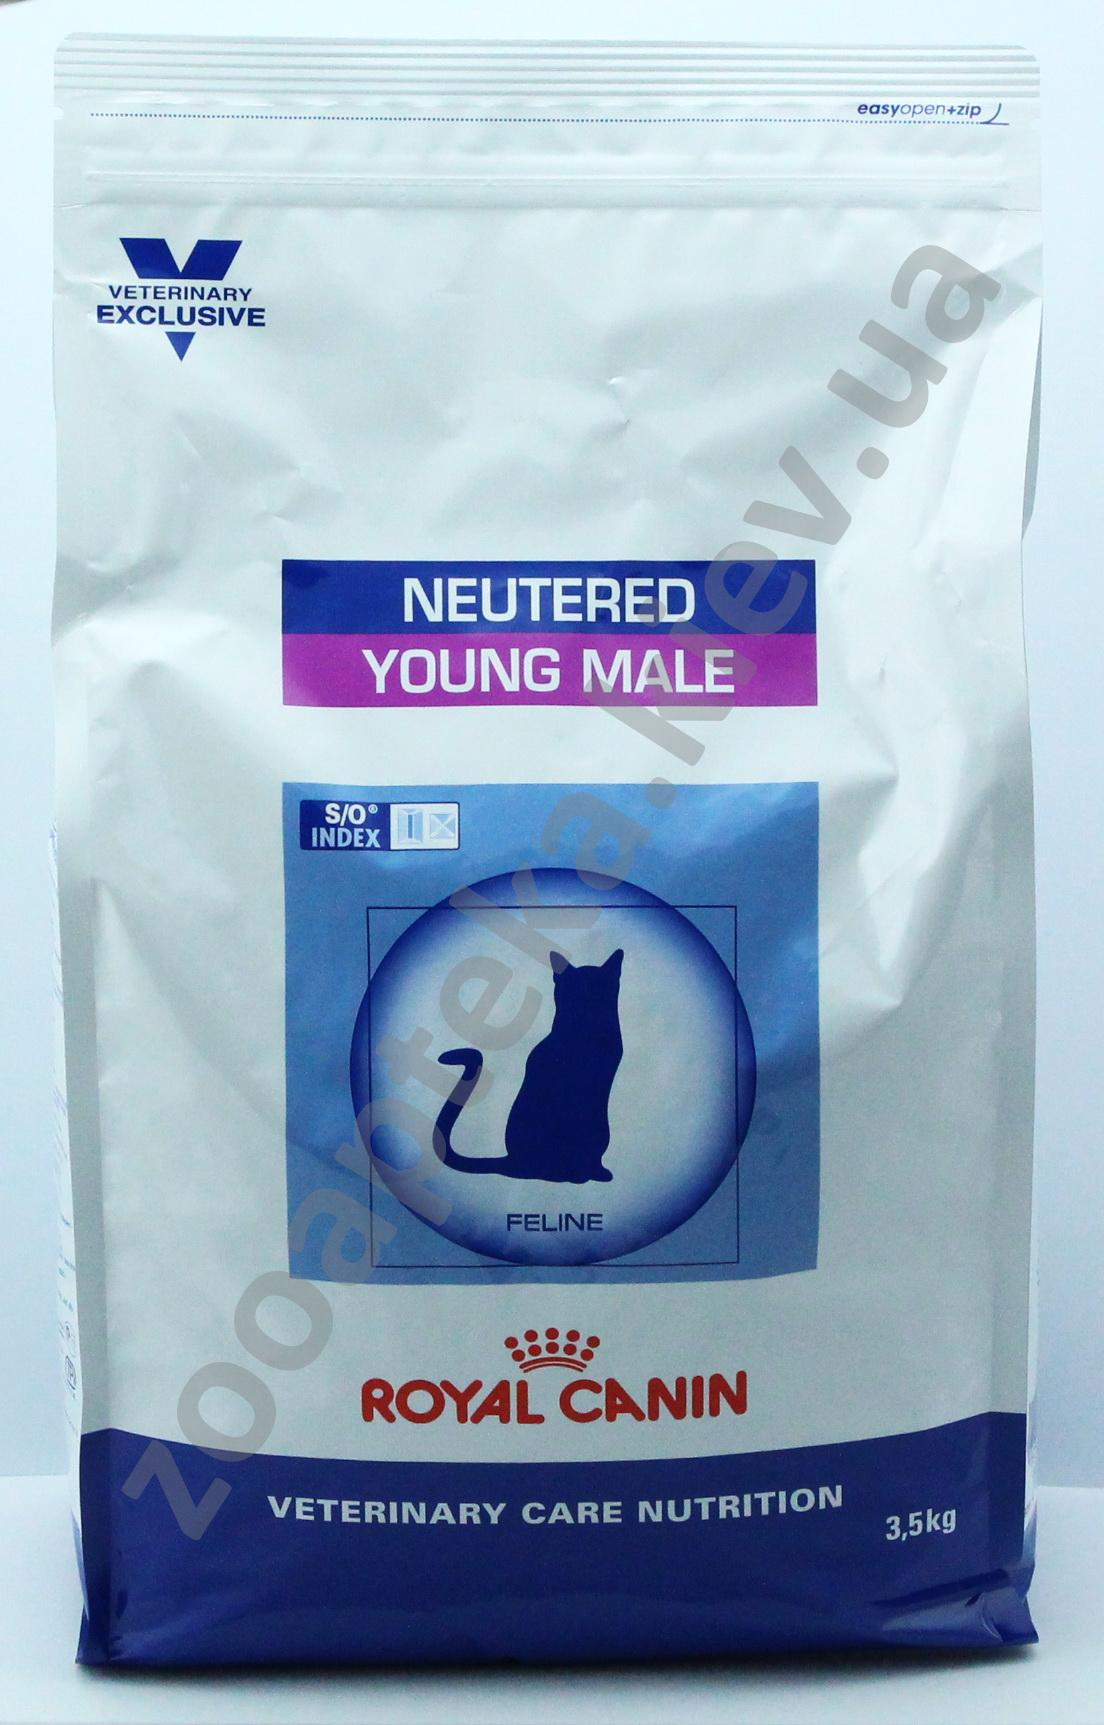 Royal canin иваново